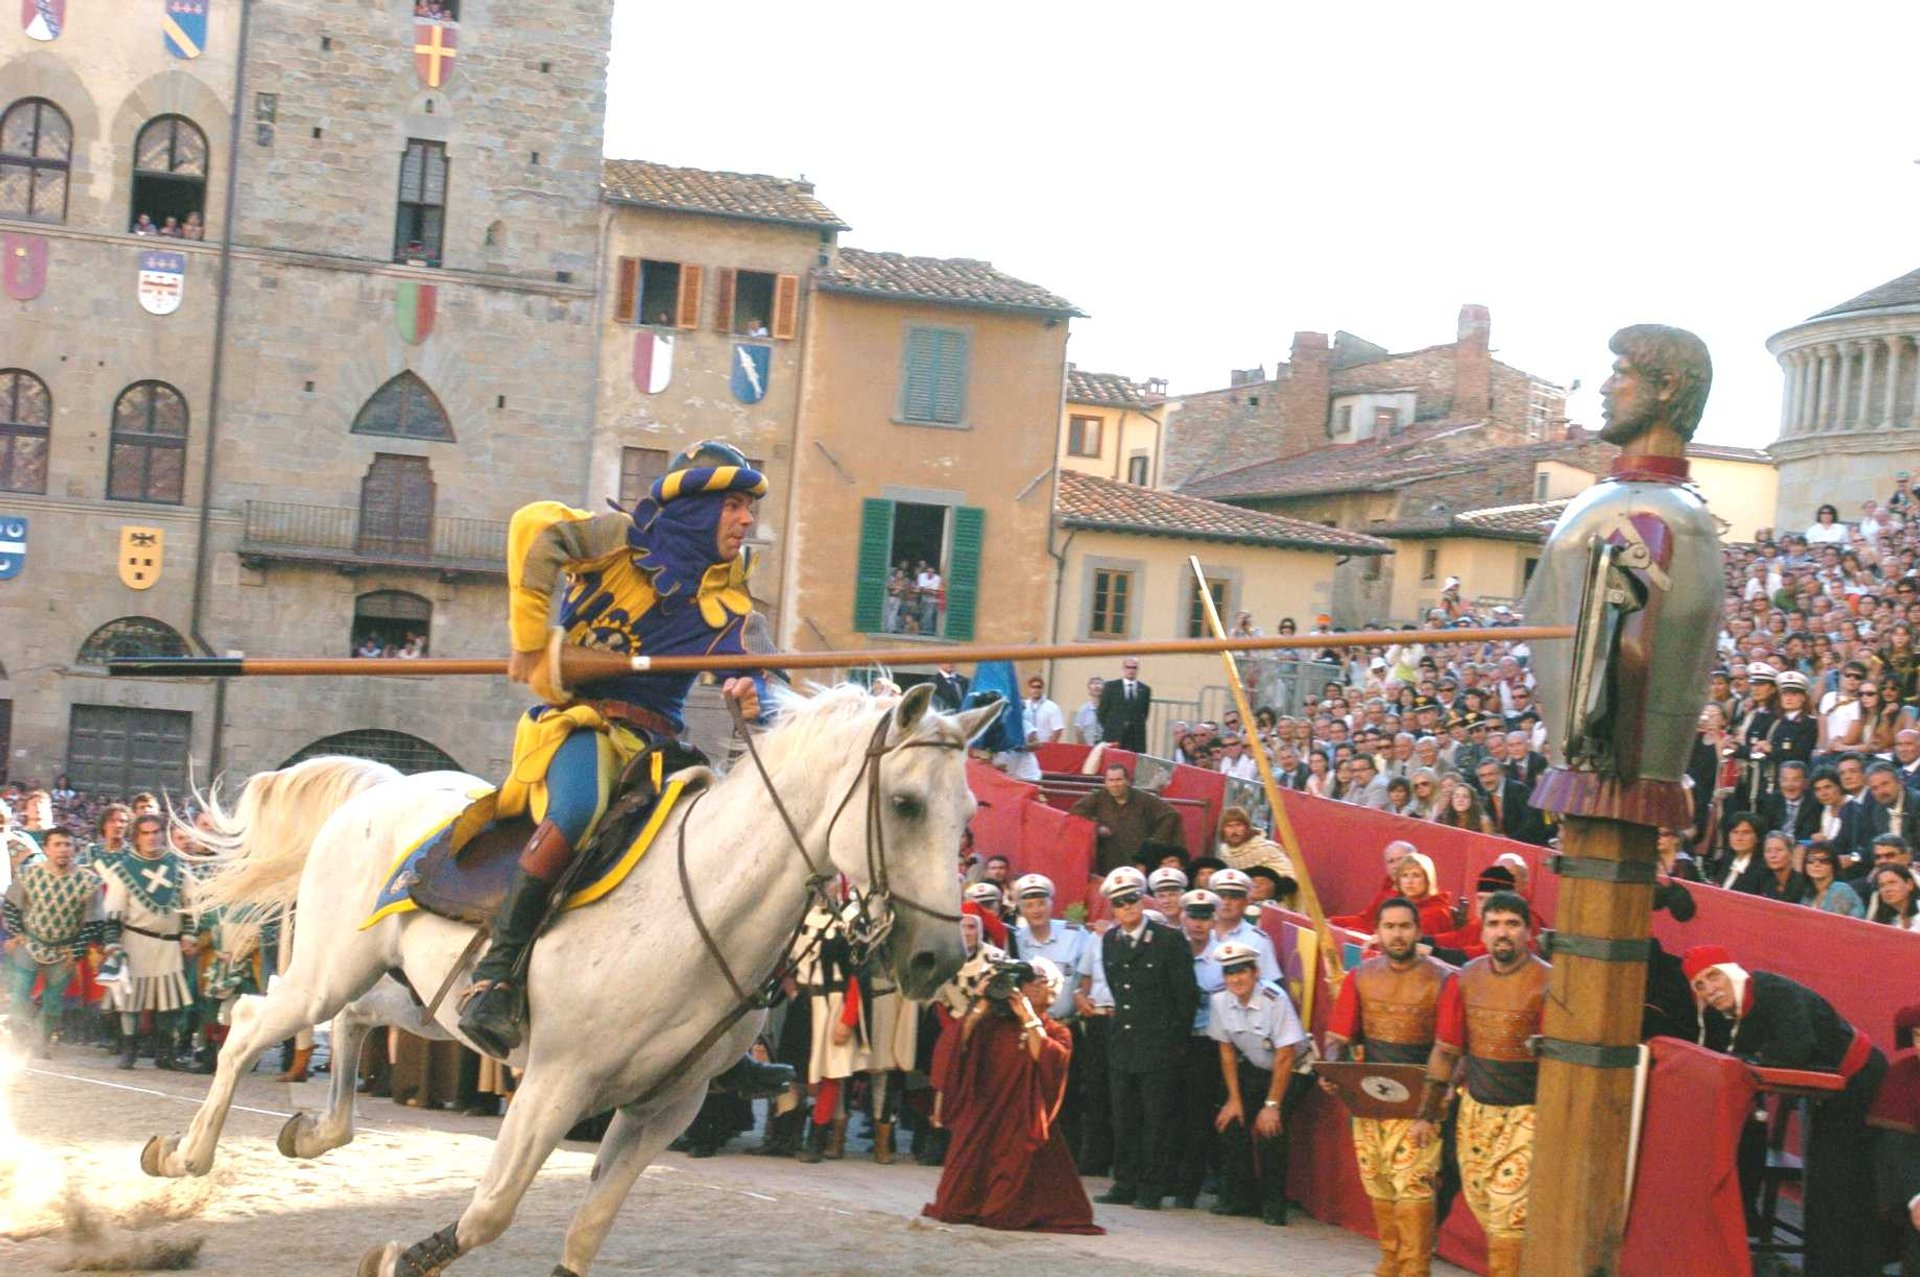 Giostra del Saracino (Joust of the Saracens) in Tuscany 2019 - Best Time